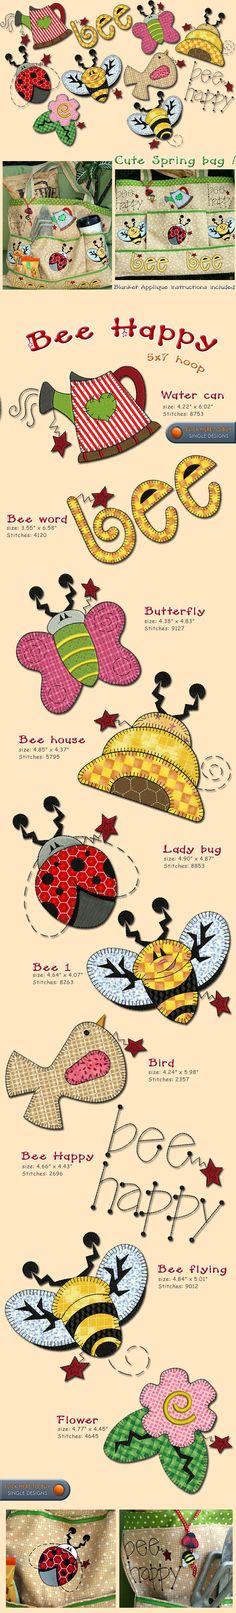 FLOWERS, BEE, SPRING Embroidery Designs Free Embroidery Design Patterns Applique